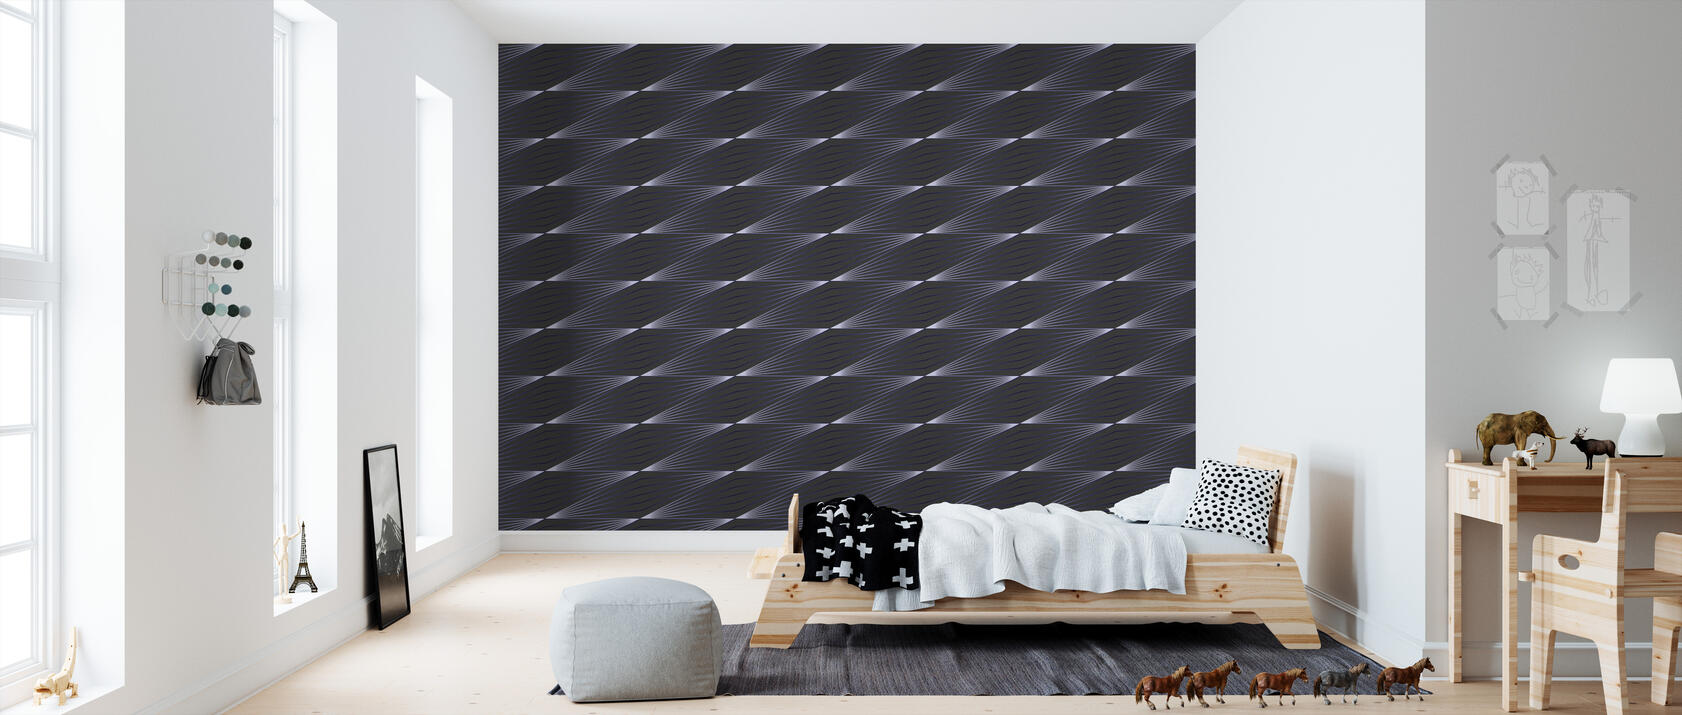 litted strings blue stilvolle tapete h chster qualit t mit schneller lieferung photowall. Black Bedroom Furniture Sets. Home Design Ideas